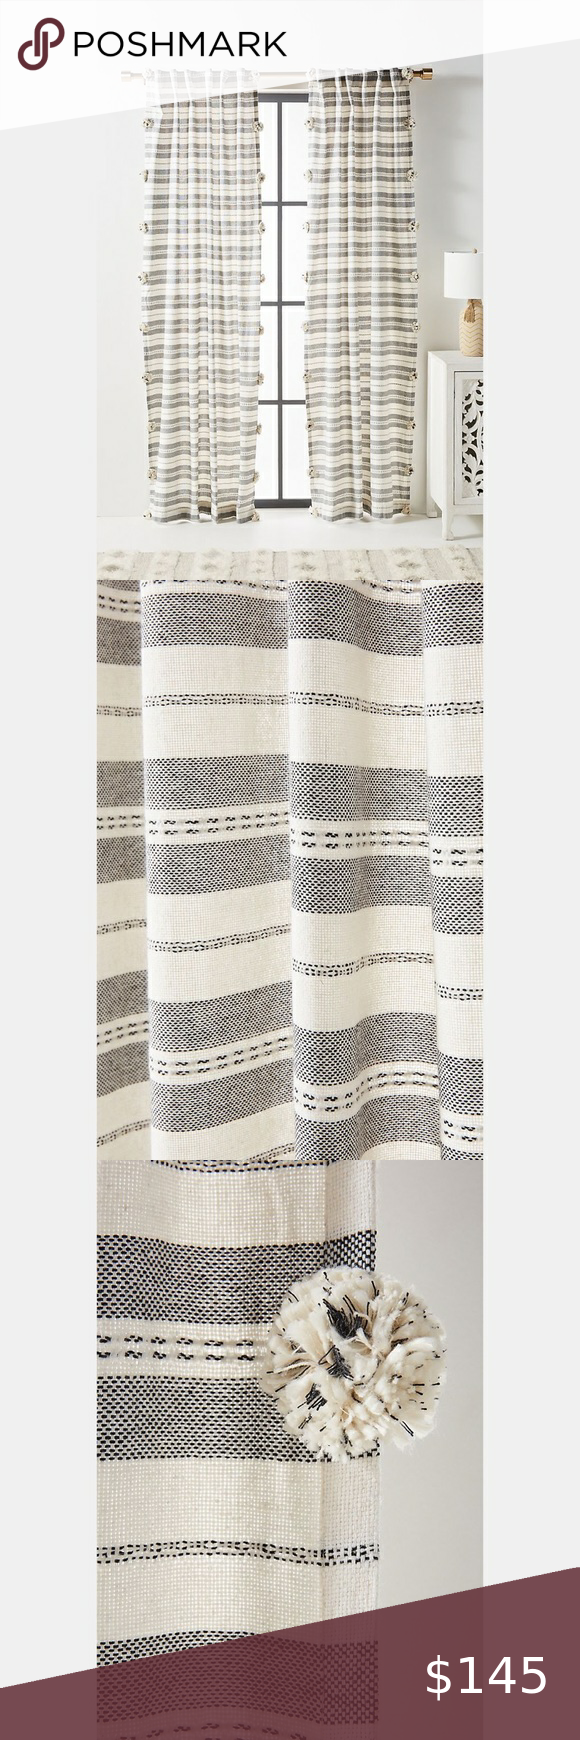 Anthropologie Pamela Curtains Set Of 2 50 X84 Curtains Curtain Sets Drapes Curtains